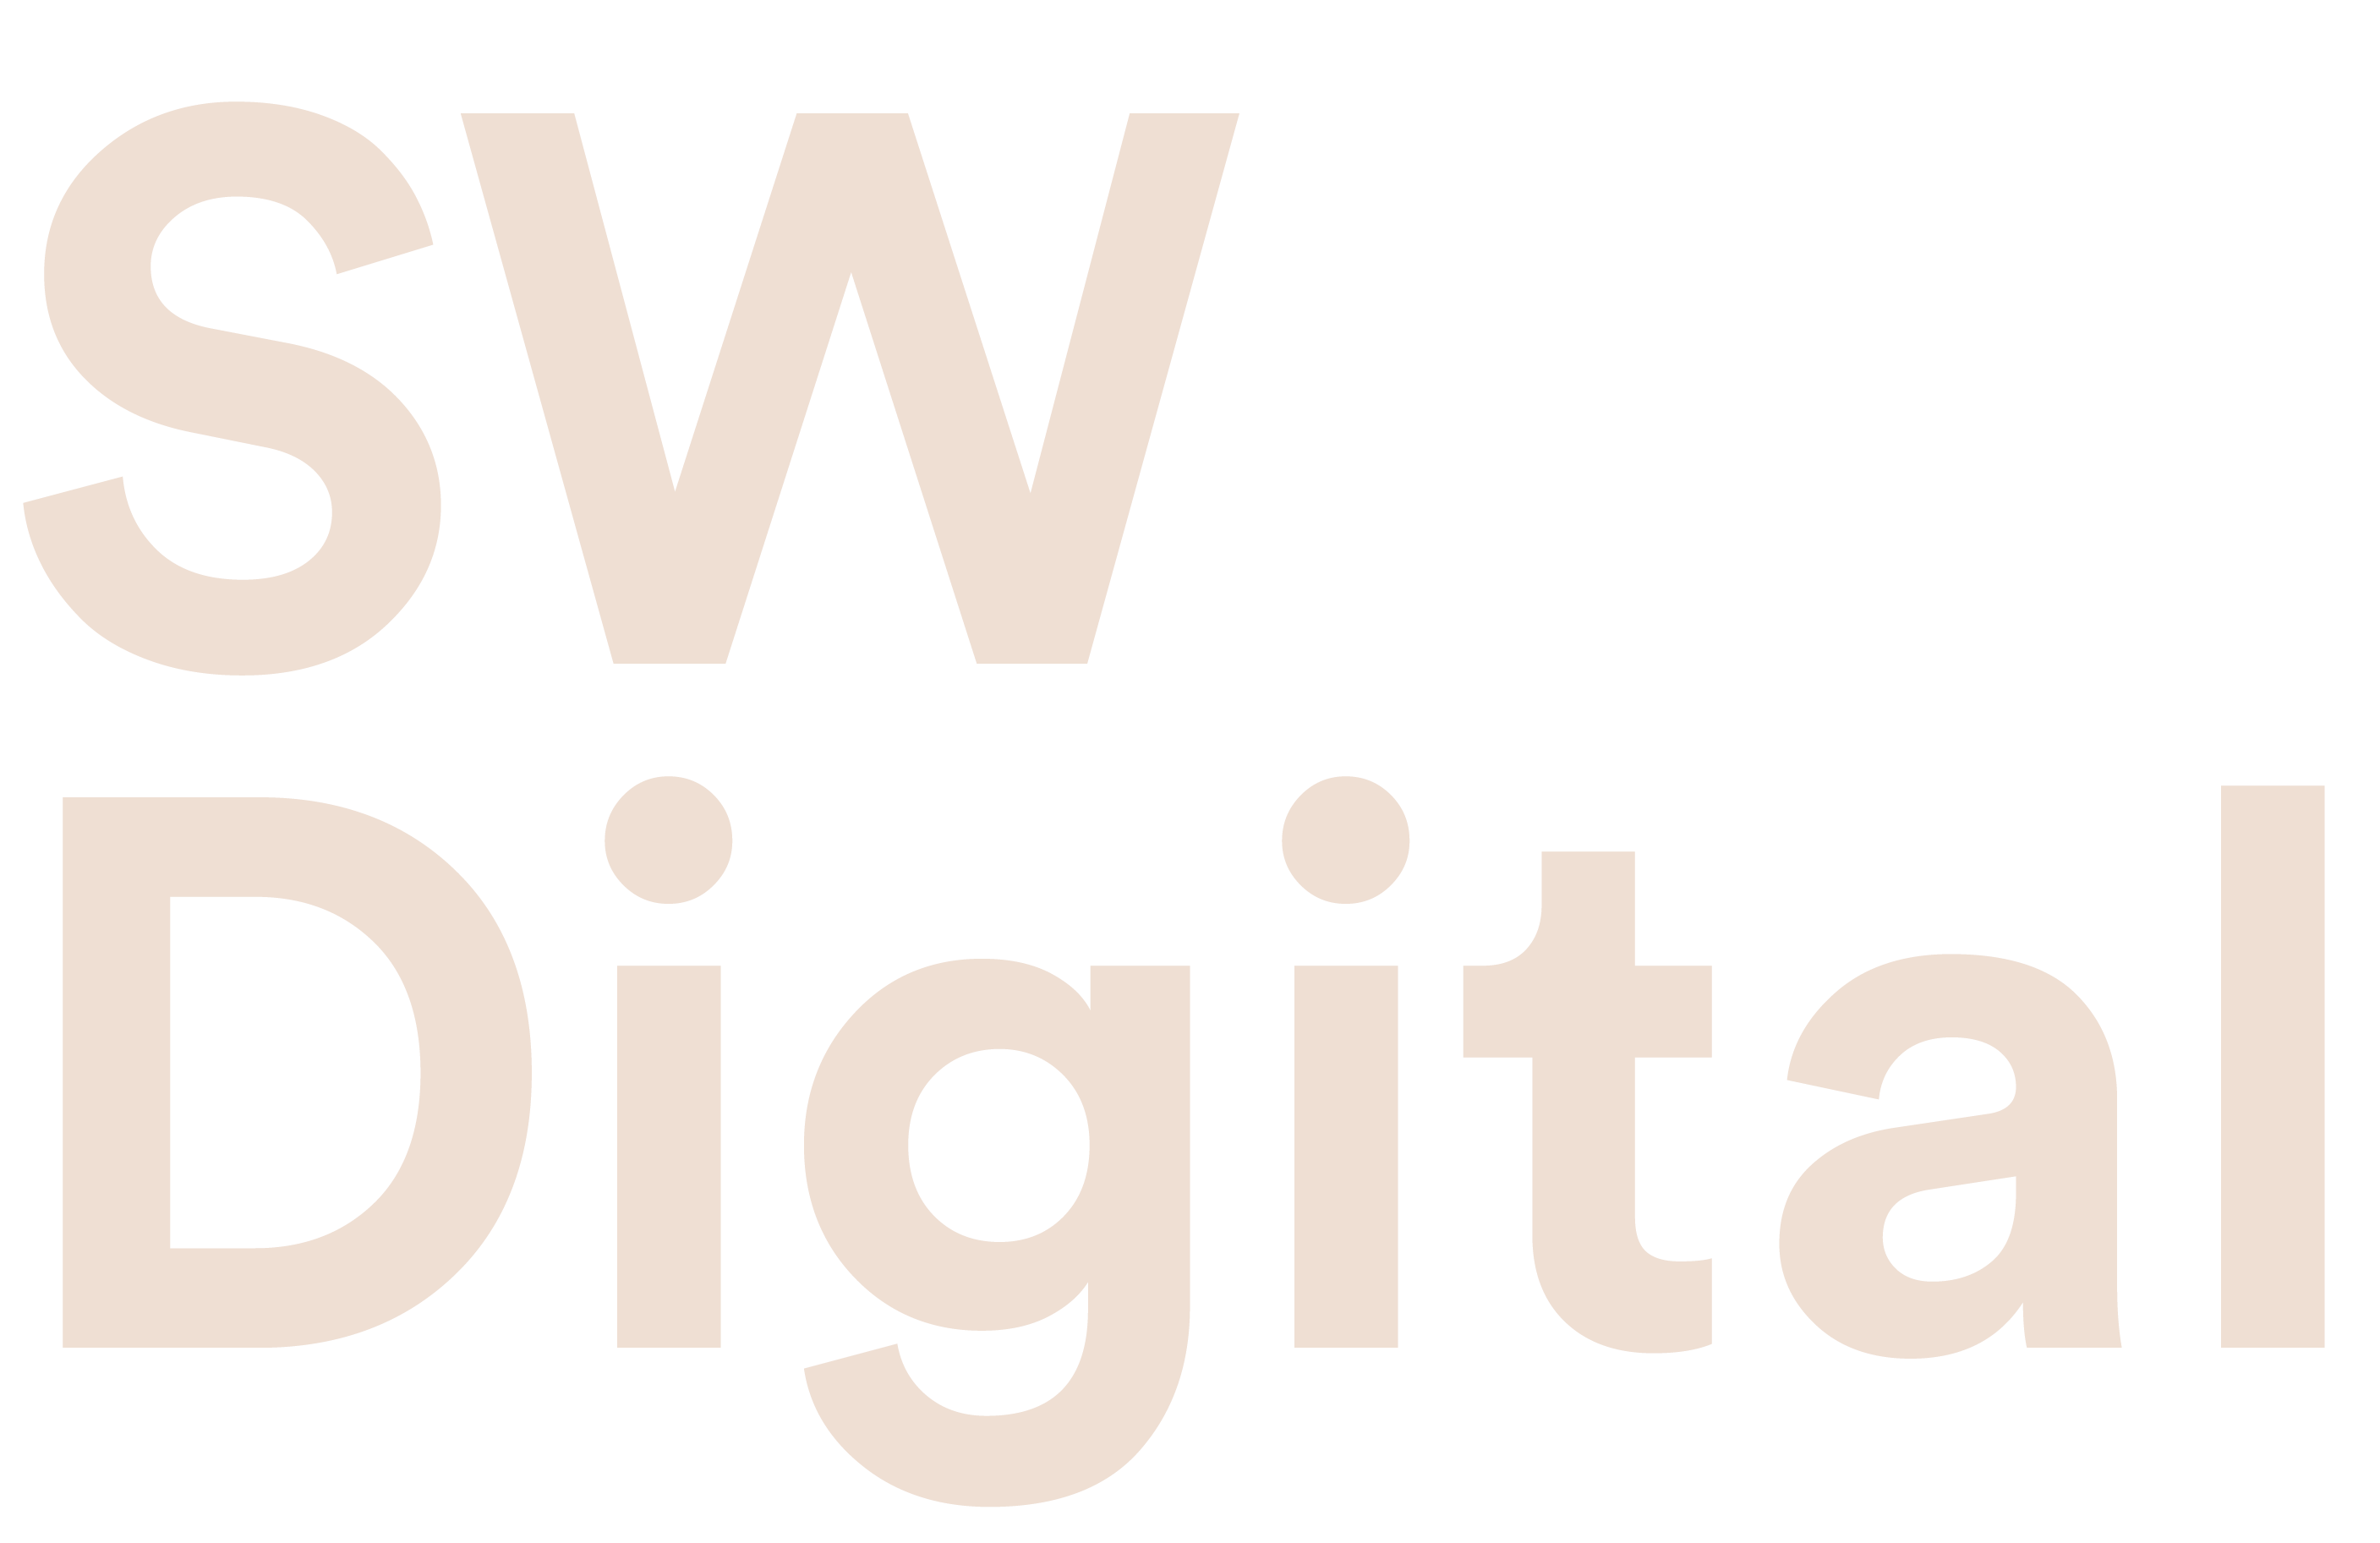 SW digital logo